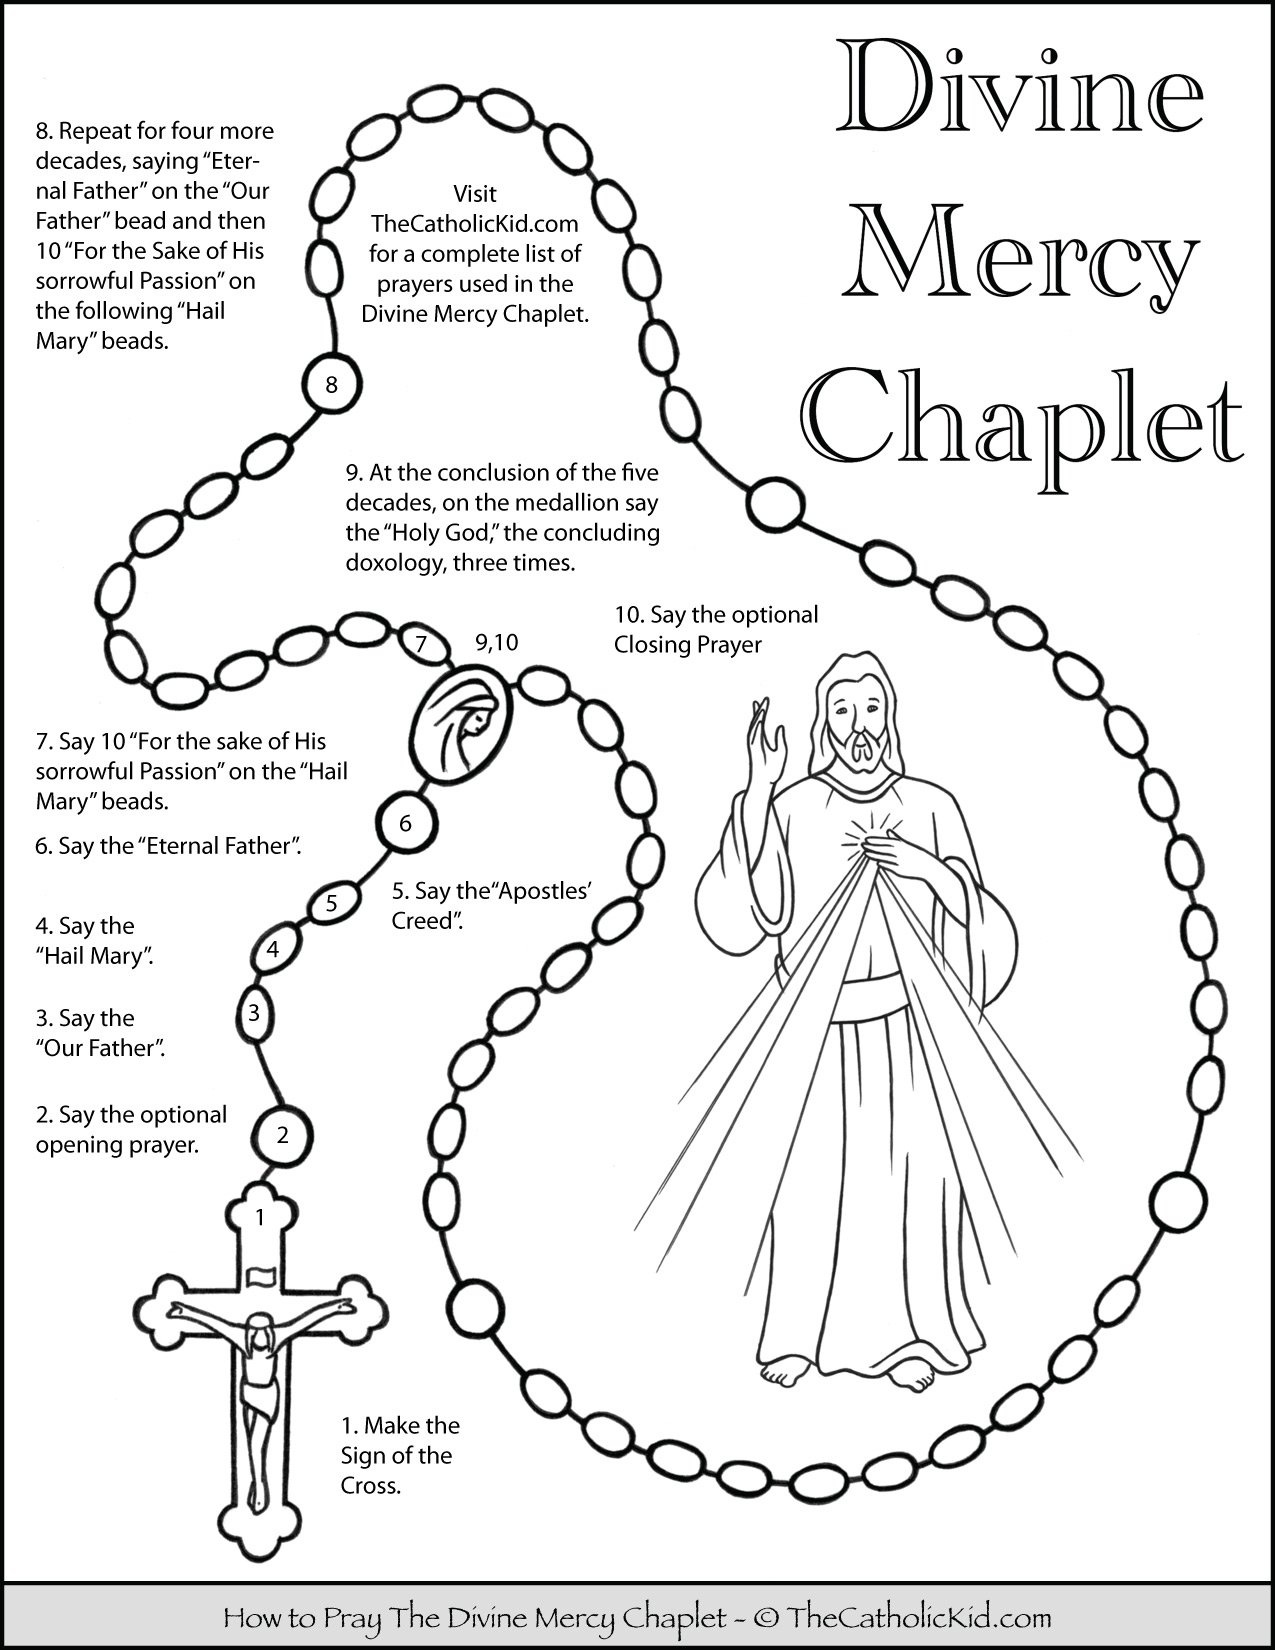 How to Pray the Divine Mercy Chaplet - Kids Coloring Page